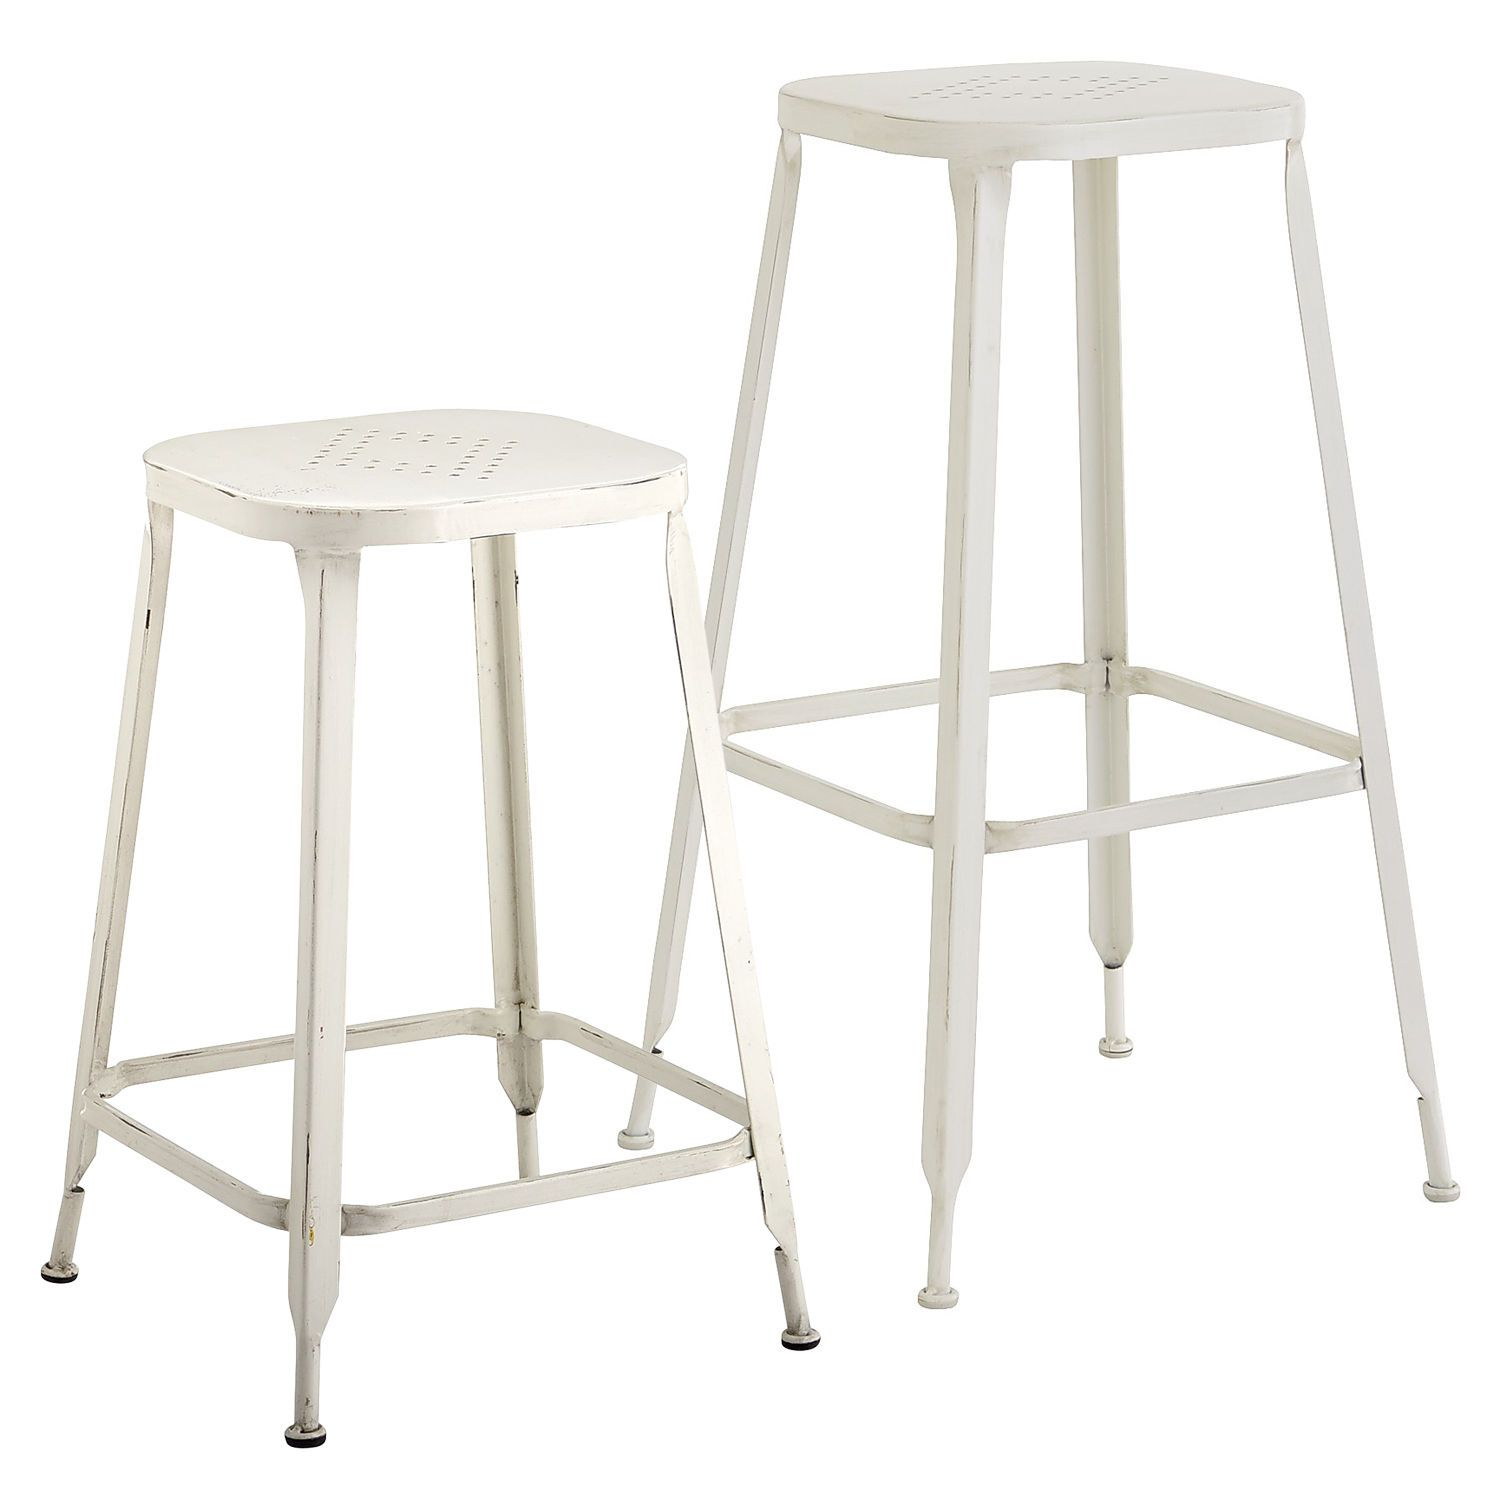 Weldon Backless Bar & Counter Stool Antique White